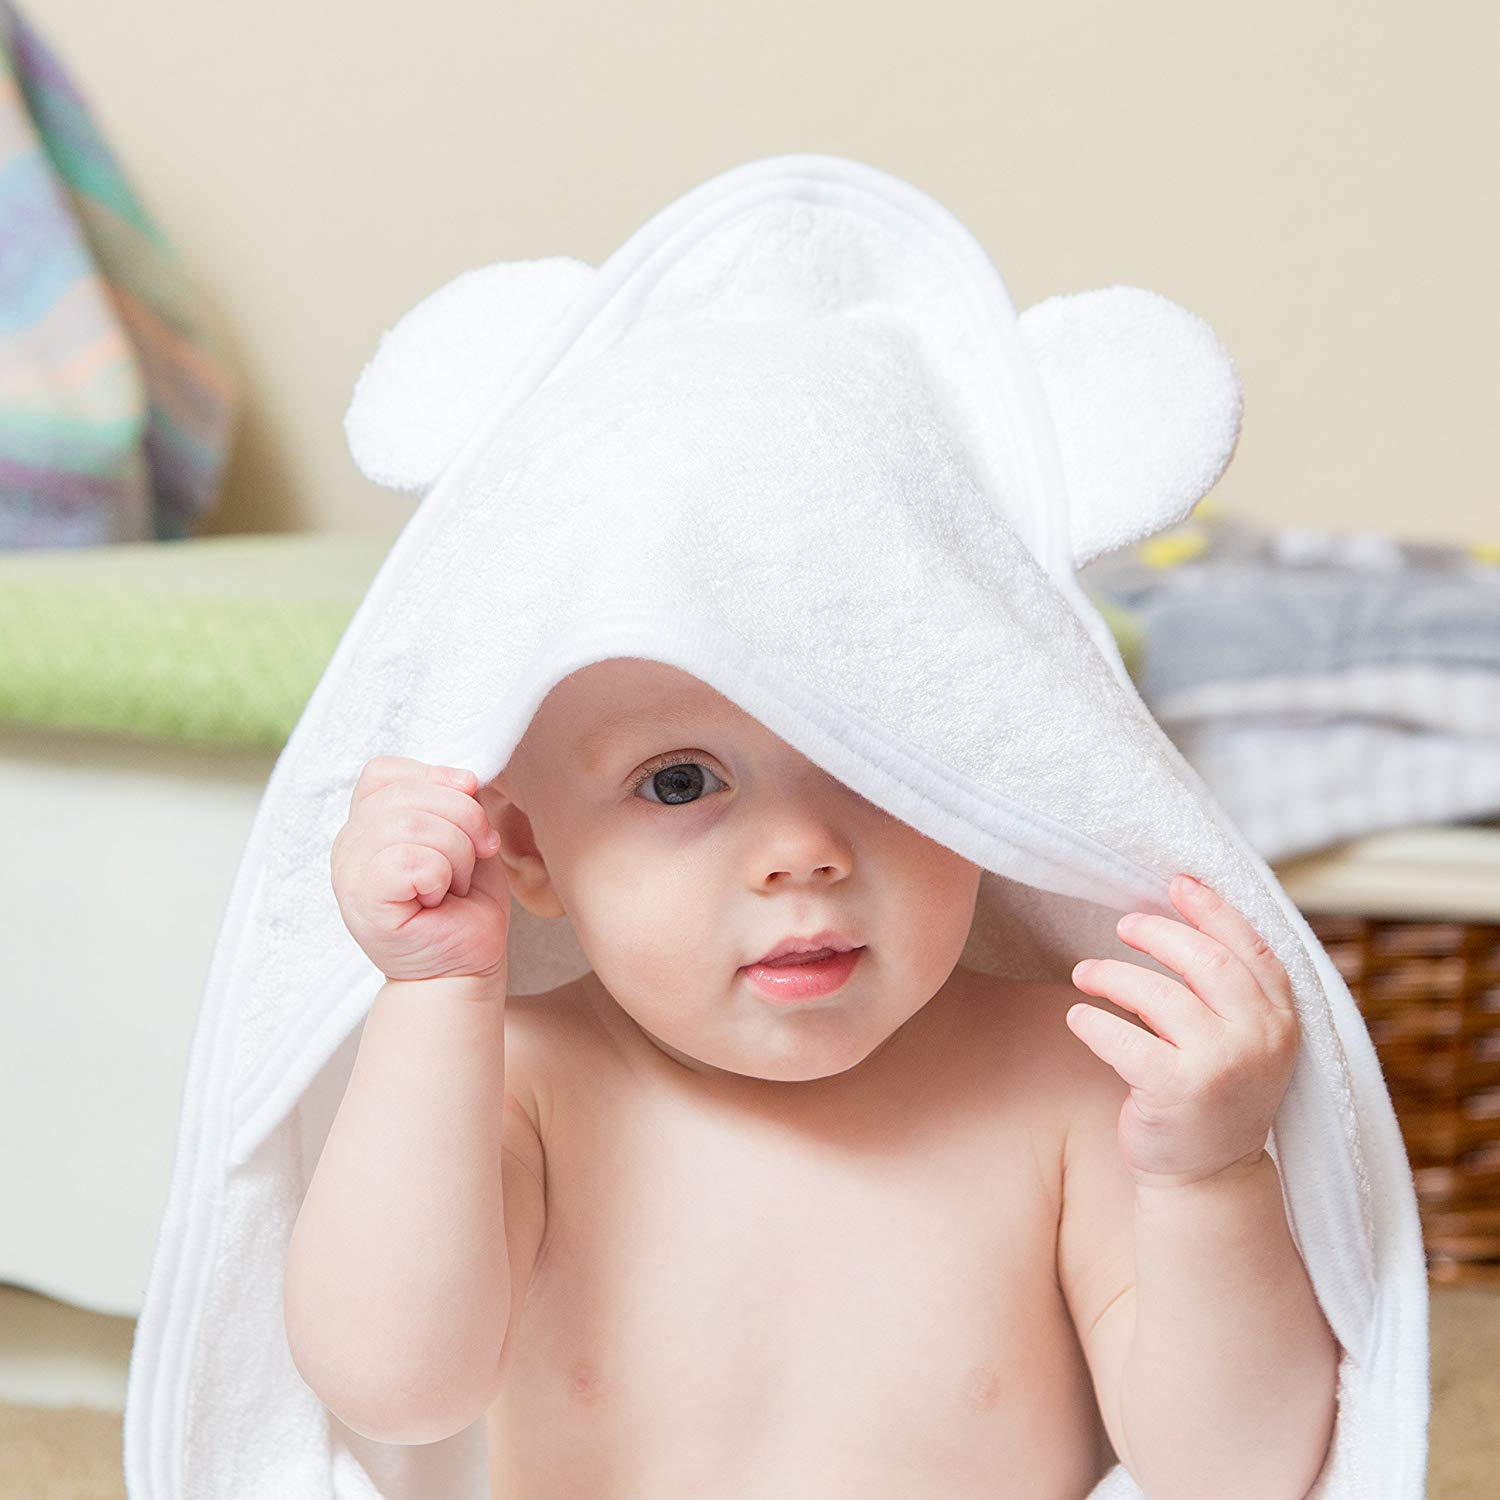 White Bamboo Hooded Baby Towel 100 Organic Unisex Towel Highly Absorbent And Super Soft Bath Towel For The Pool And Th B07211F5TG 6